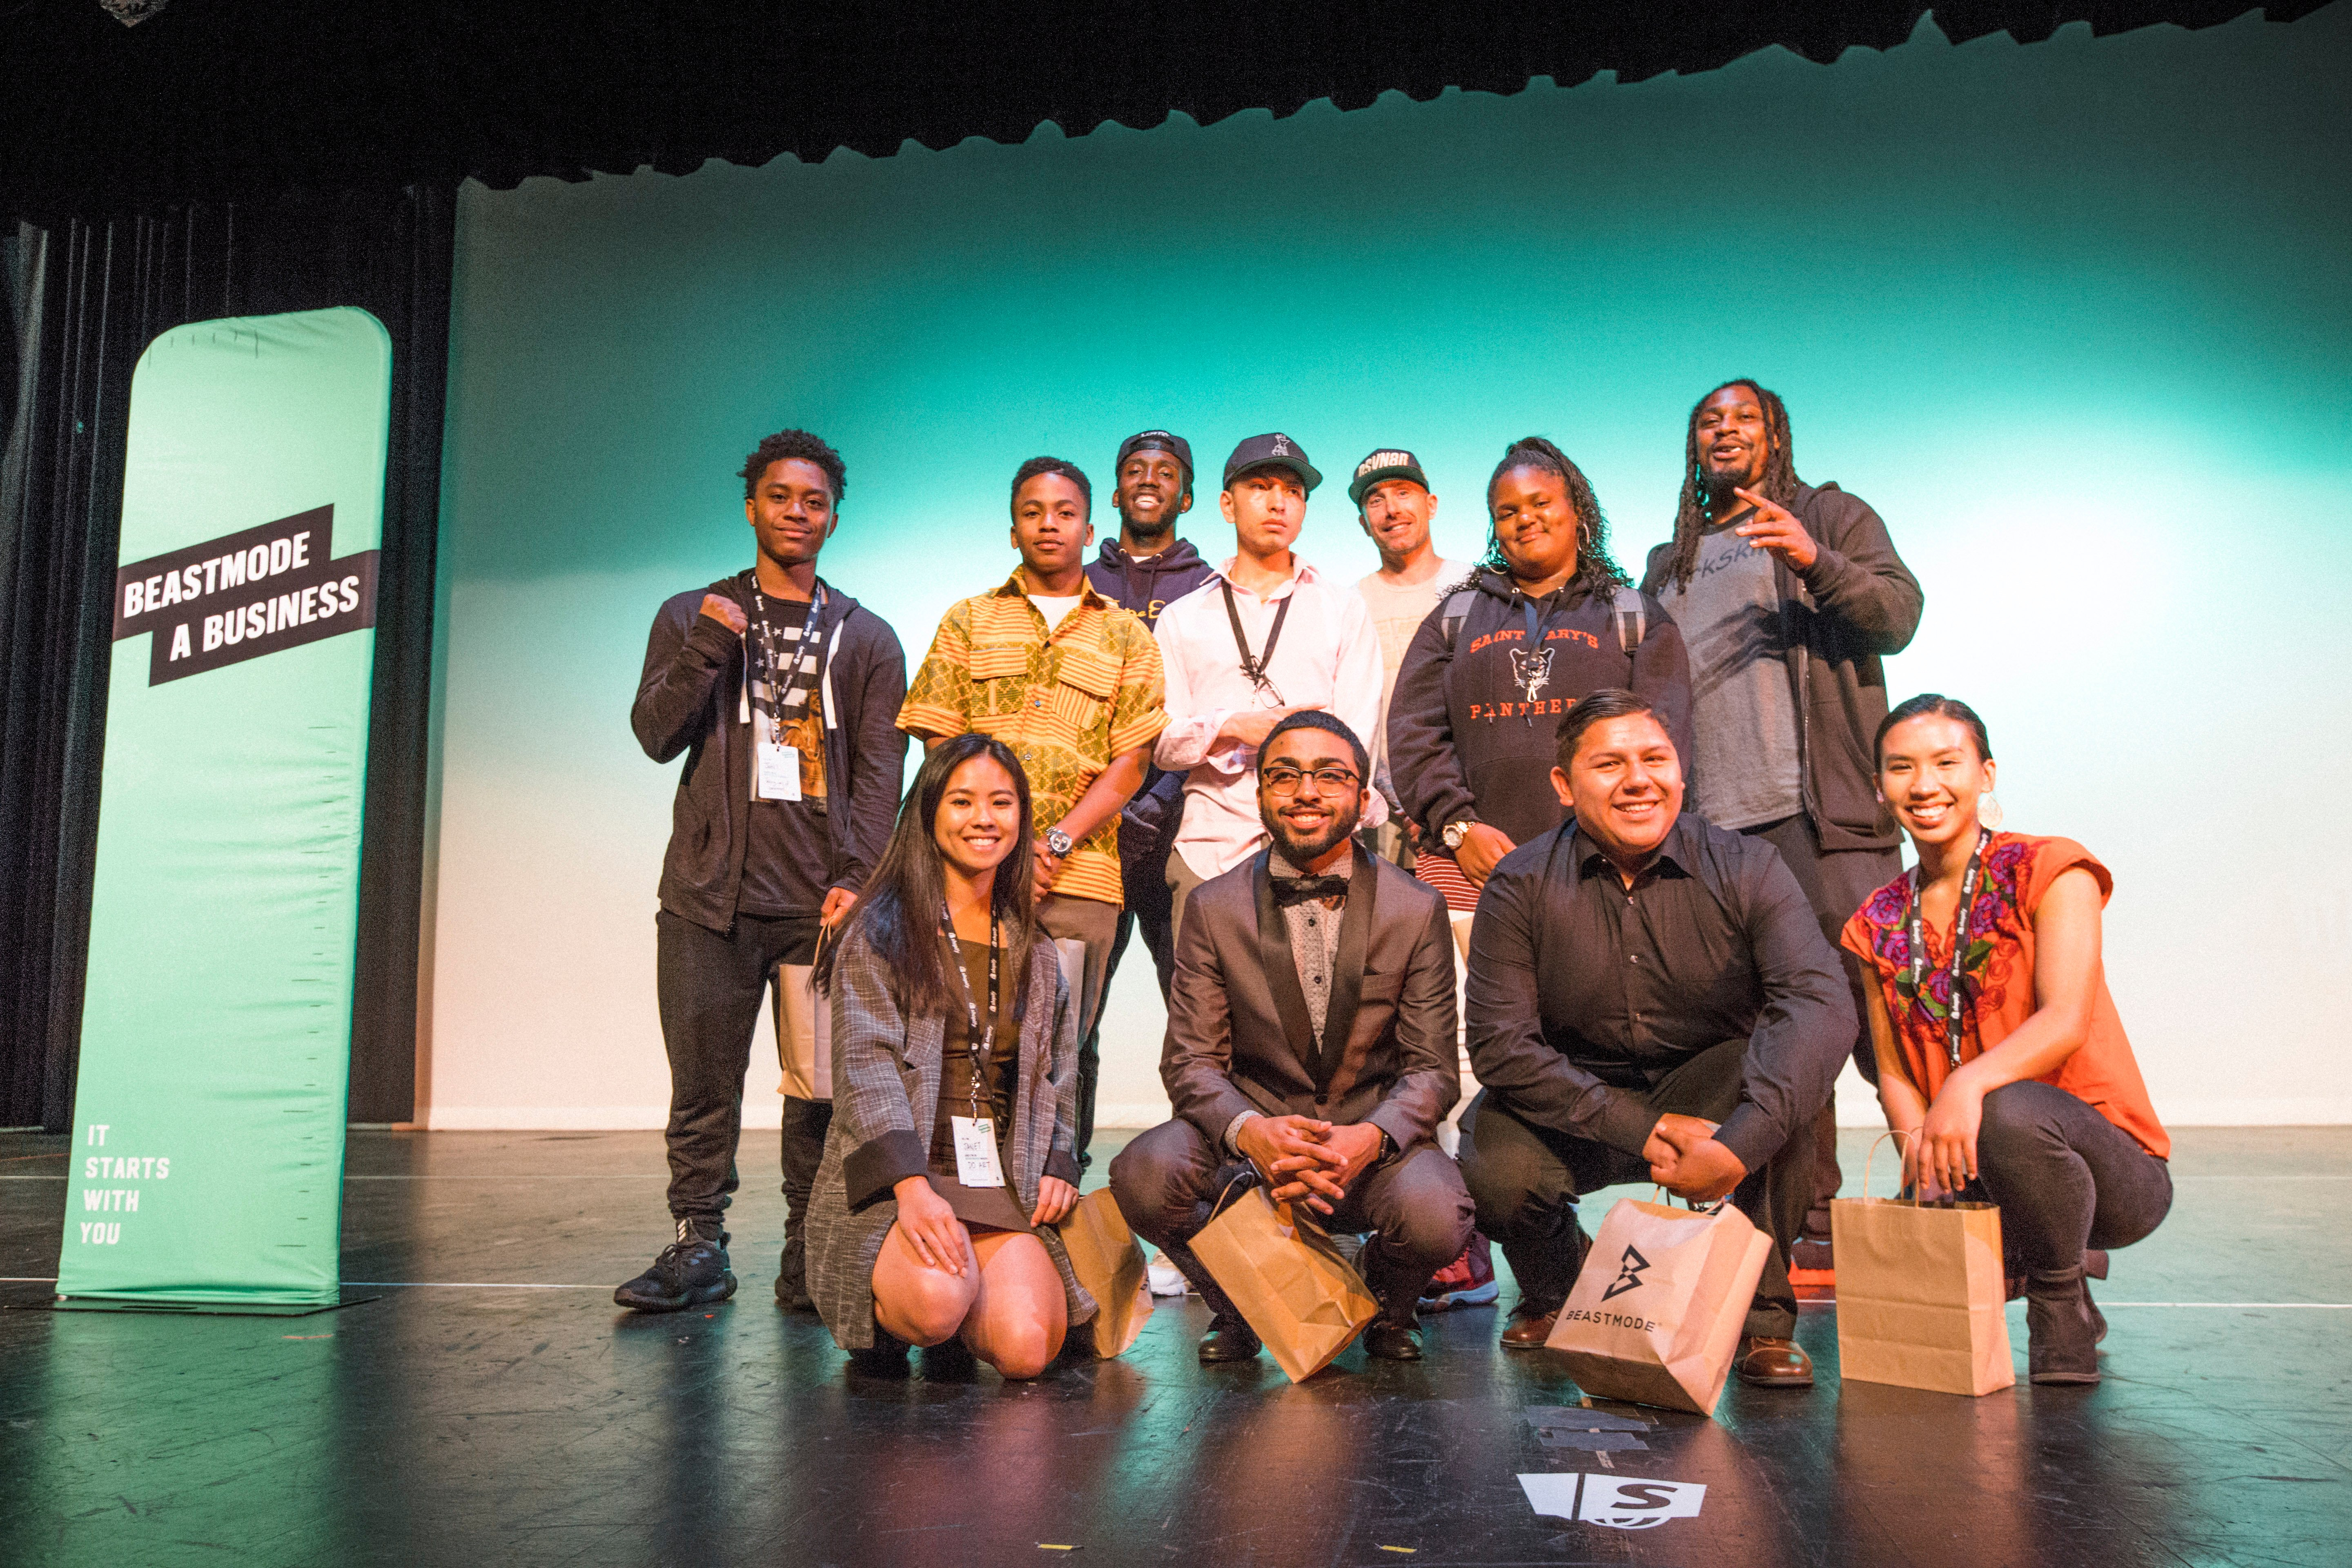 Shopify x BEASTMODE-A-Business - Final 8 Students.jpg